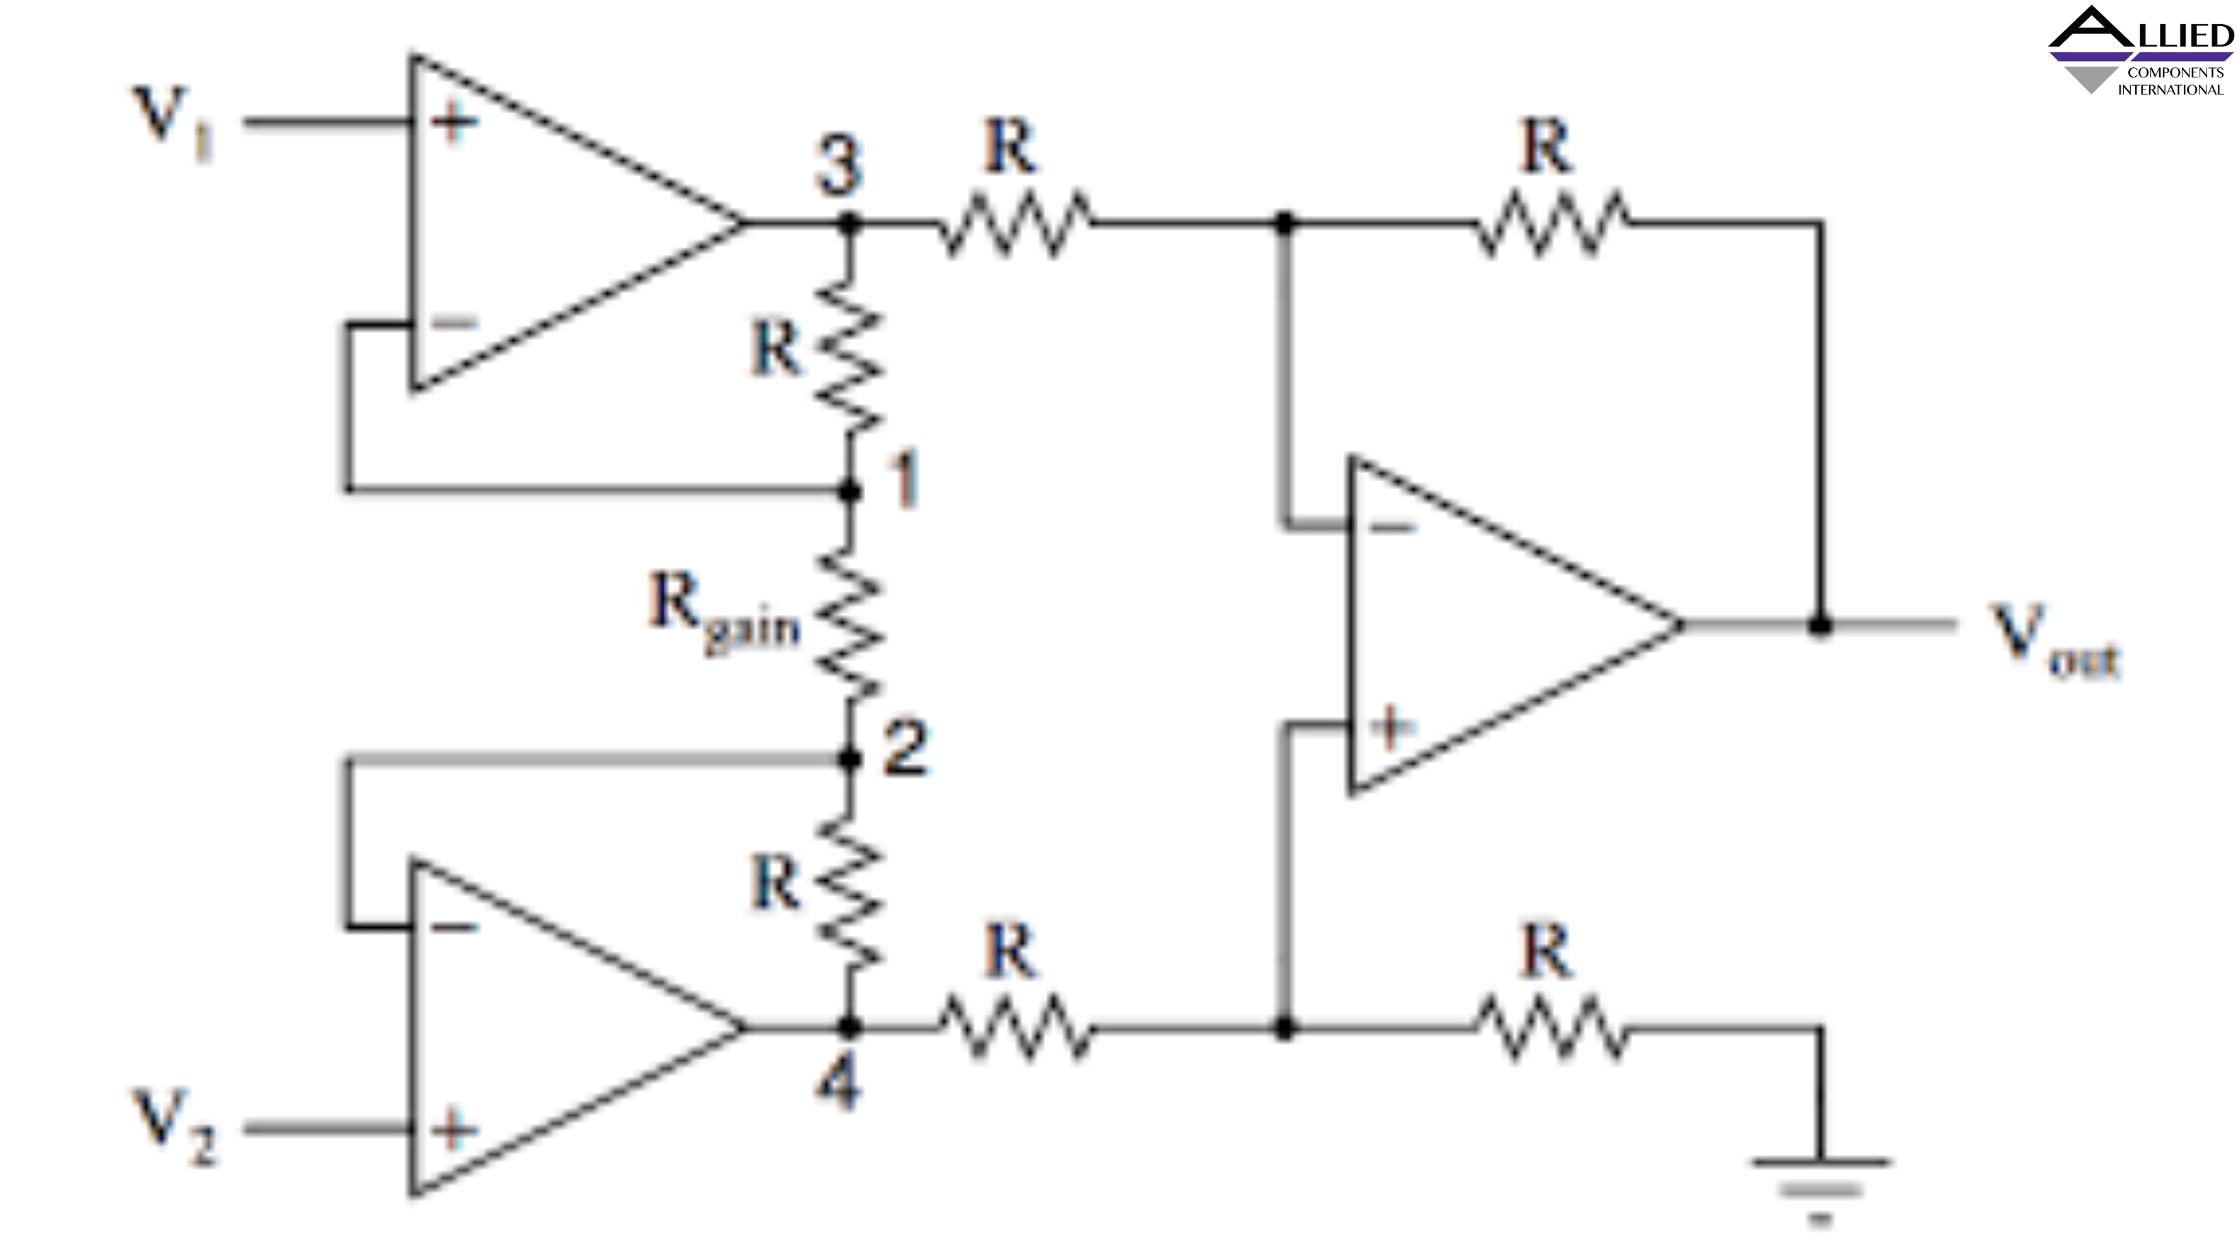 Why Instrumentation Amplifiers Require High Common-Mode Rejection Levels